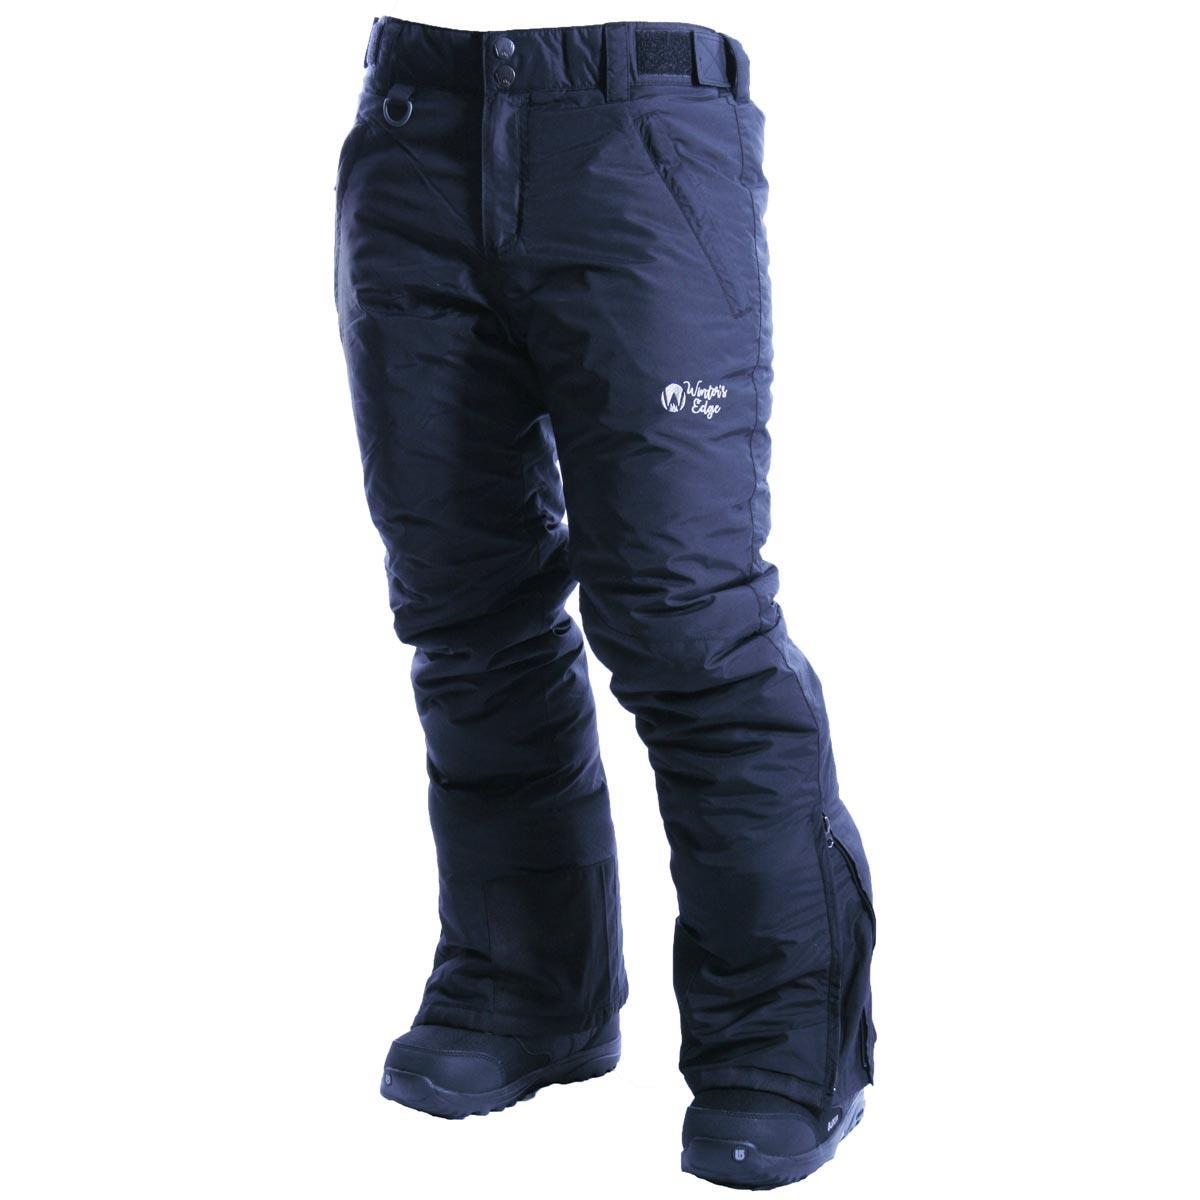 9f96a57ceb8 Winters Edge Avalanche Snow Pants Womens. Loading zoom